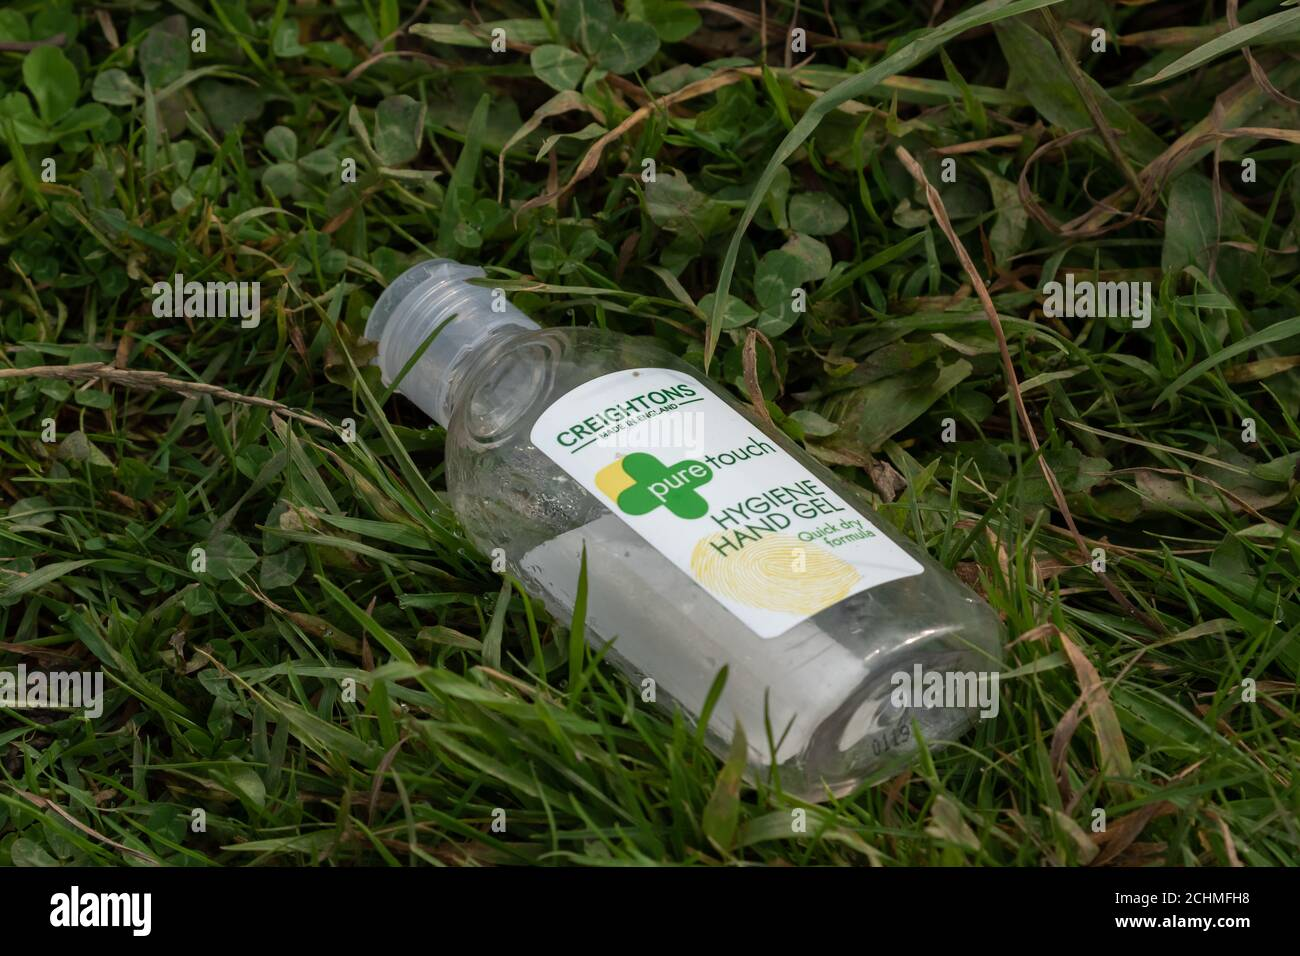 A discarded empty plastic bottle that originally contained hand sanitiser. Stock Photo